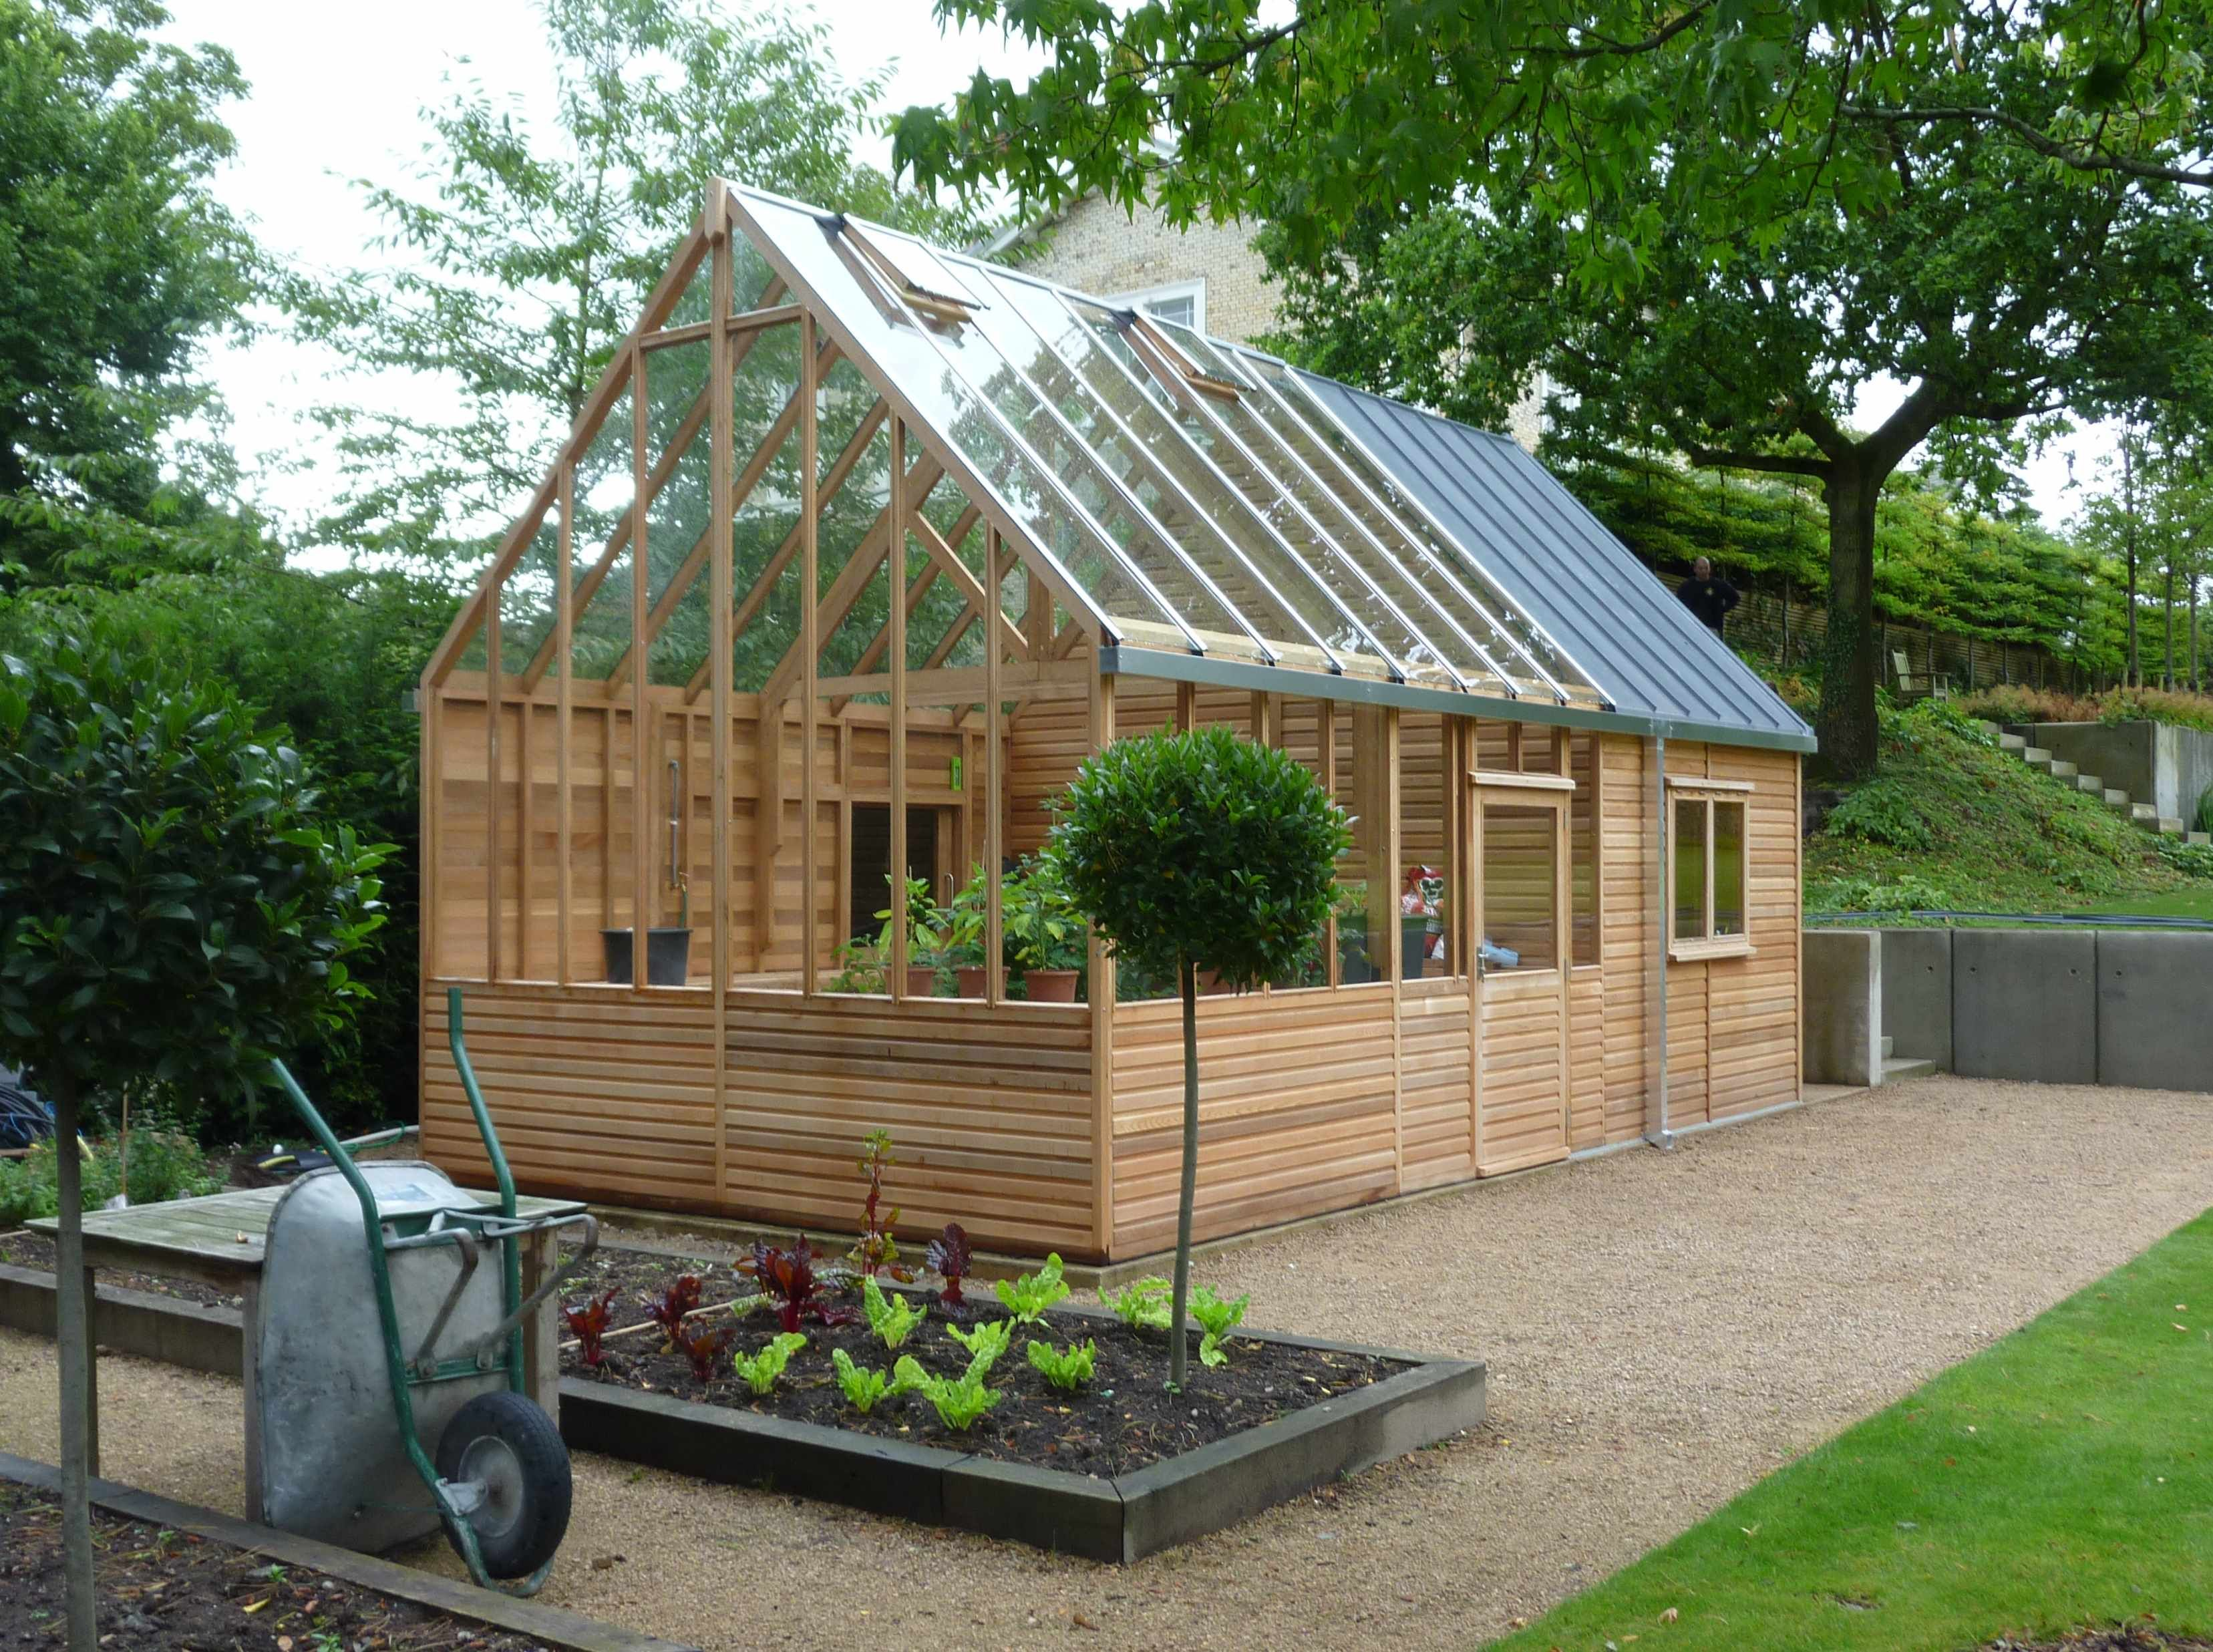 greenhouses at bramshall staffordshire england woodpecker joinery uk ltd - Garden Sheds With Greenhouse